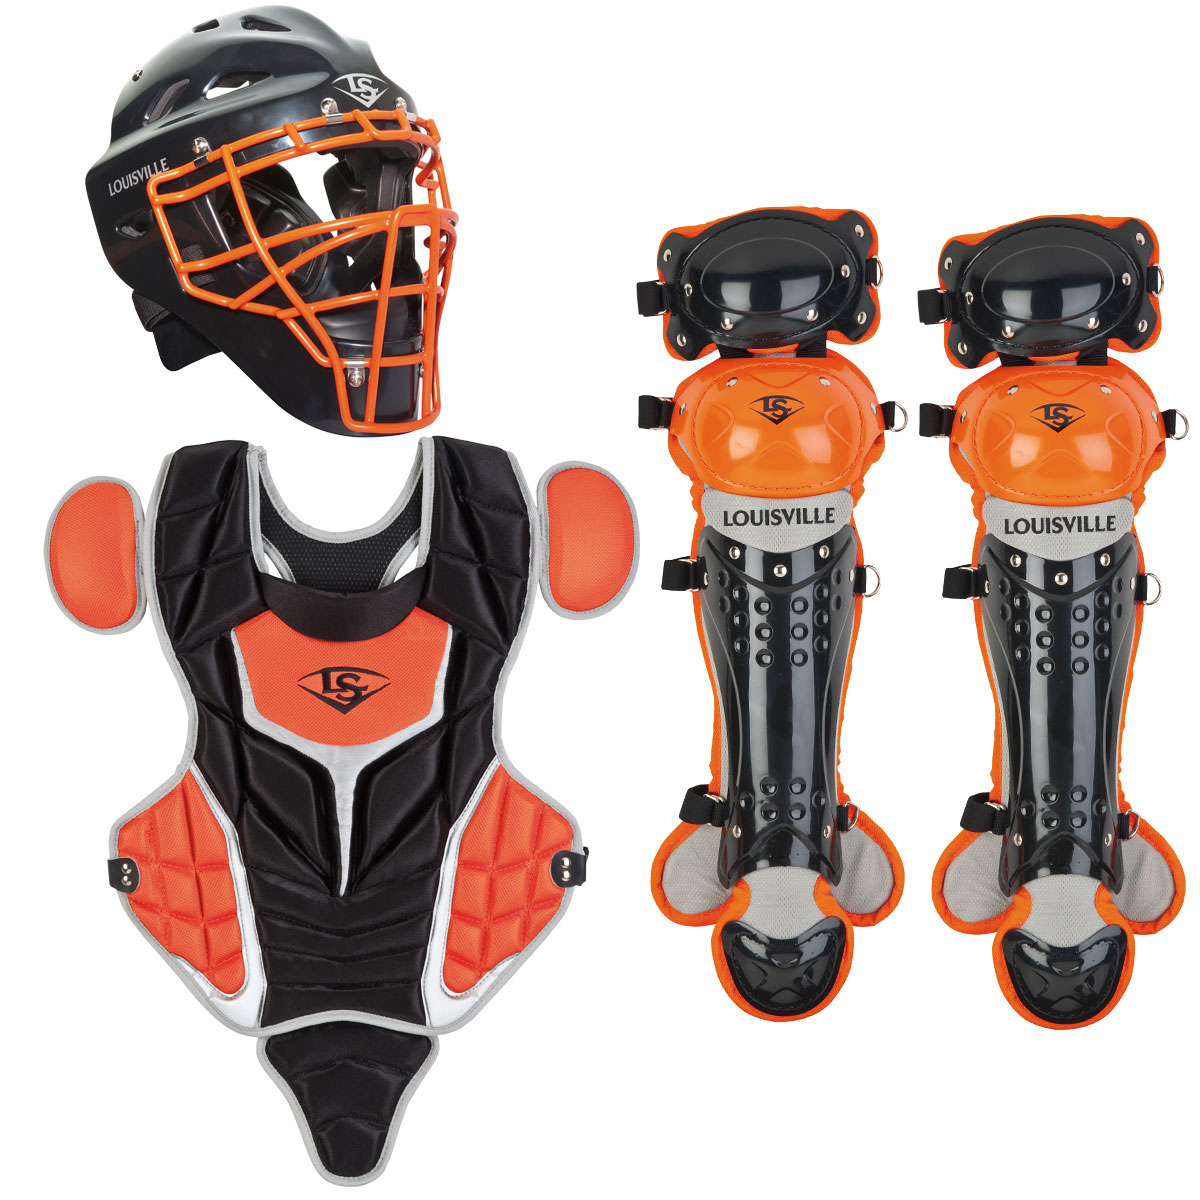 LOUISVILLE SLUGGER Series 5 Youth 3-Piece Catchers Gear S...